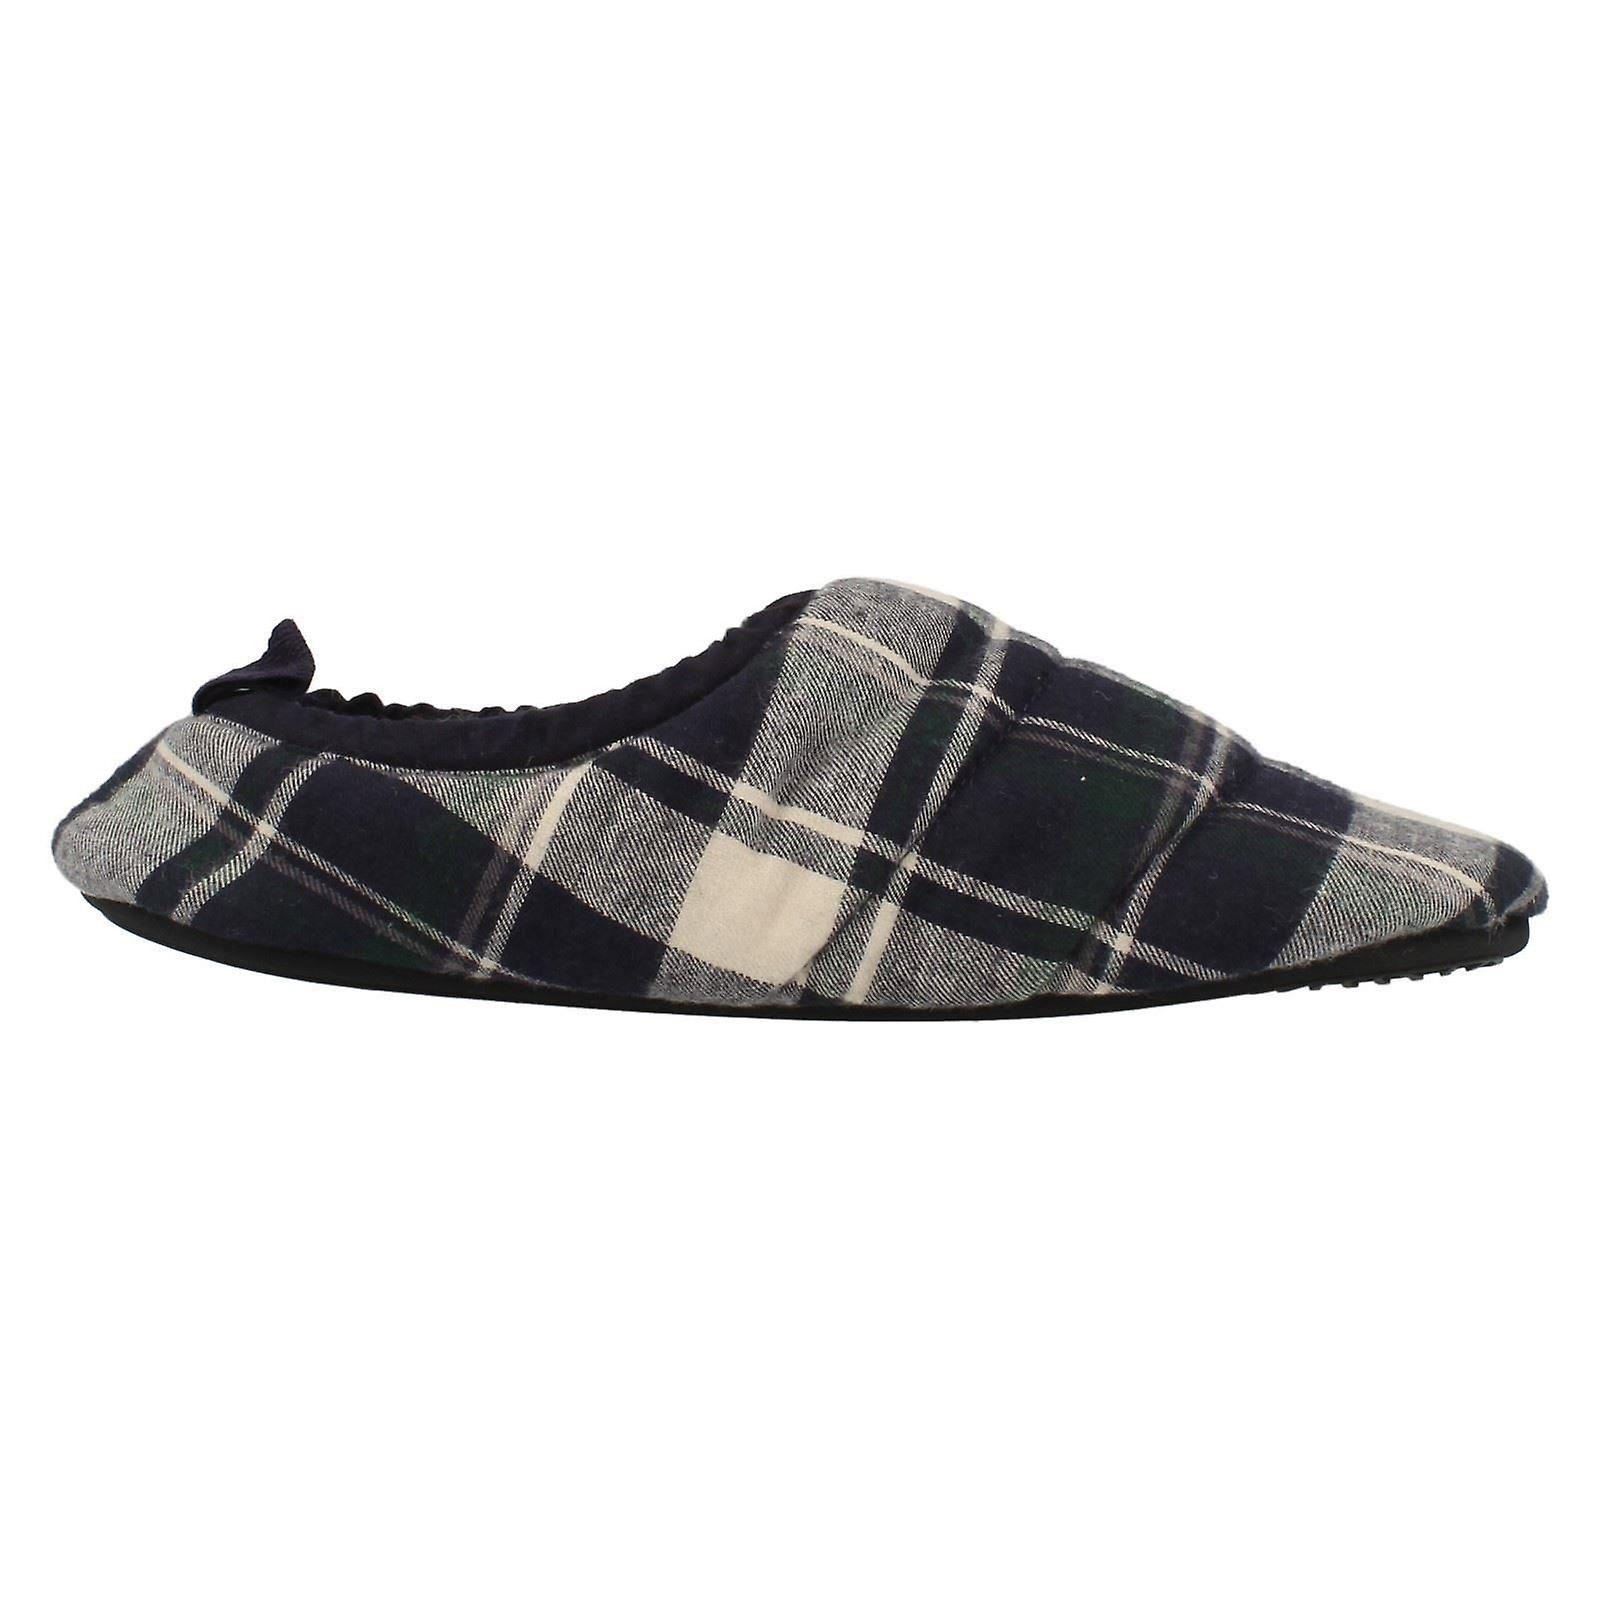 Chaussons Mule Mens Clarks Kite Snooze